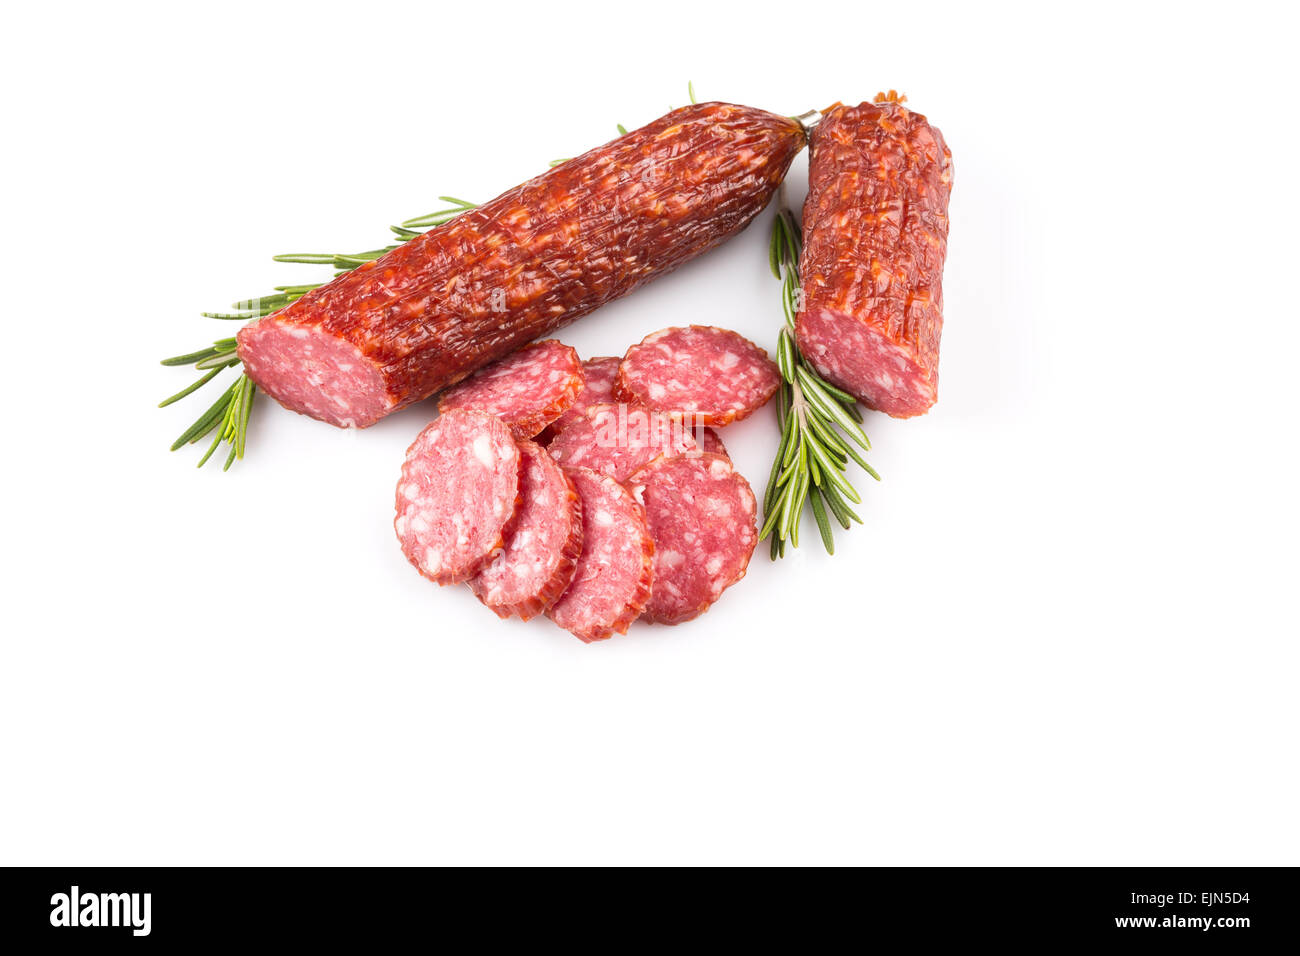 sliced salami isolated on a white background - Stock Image